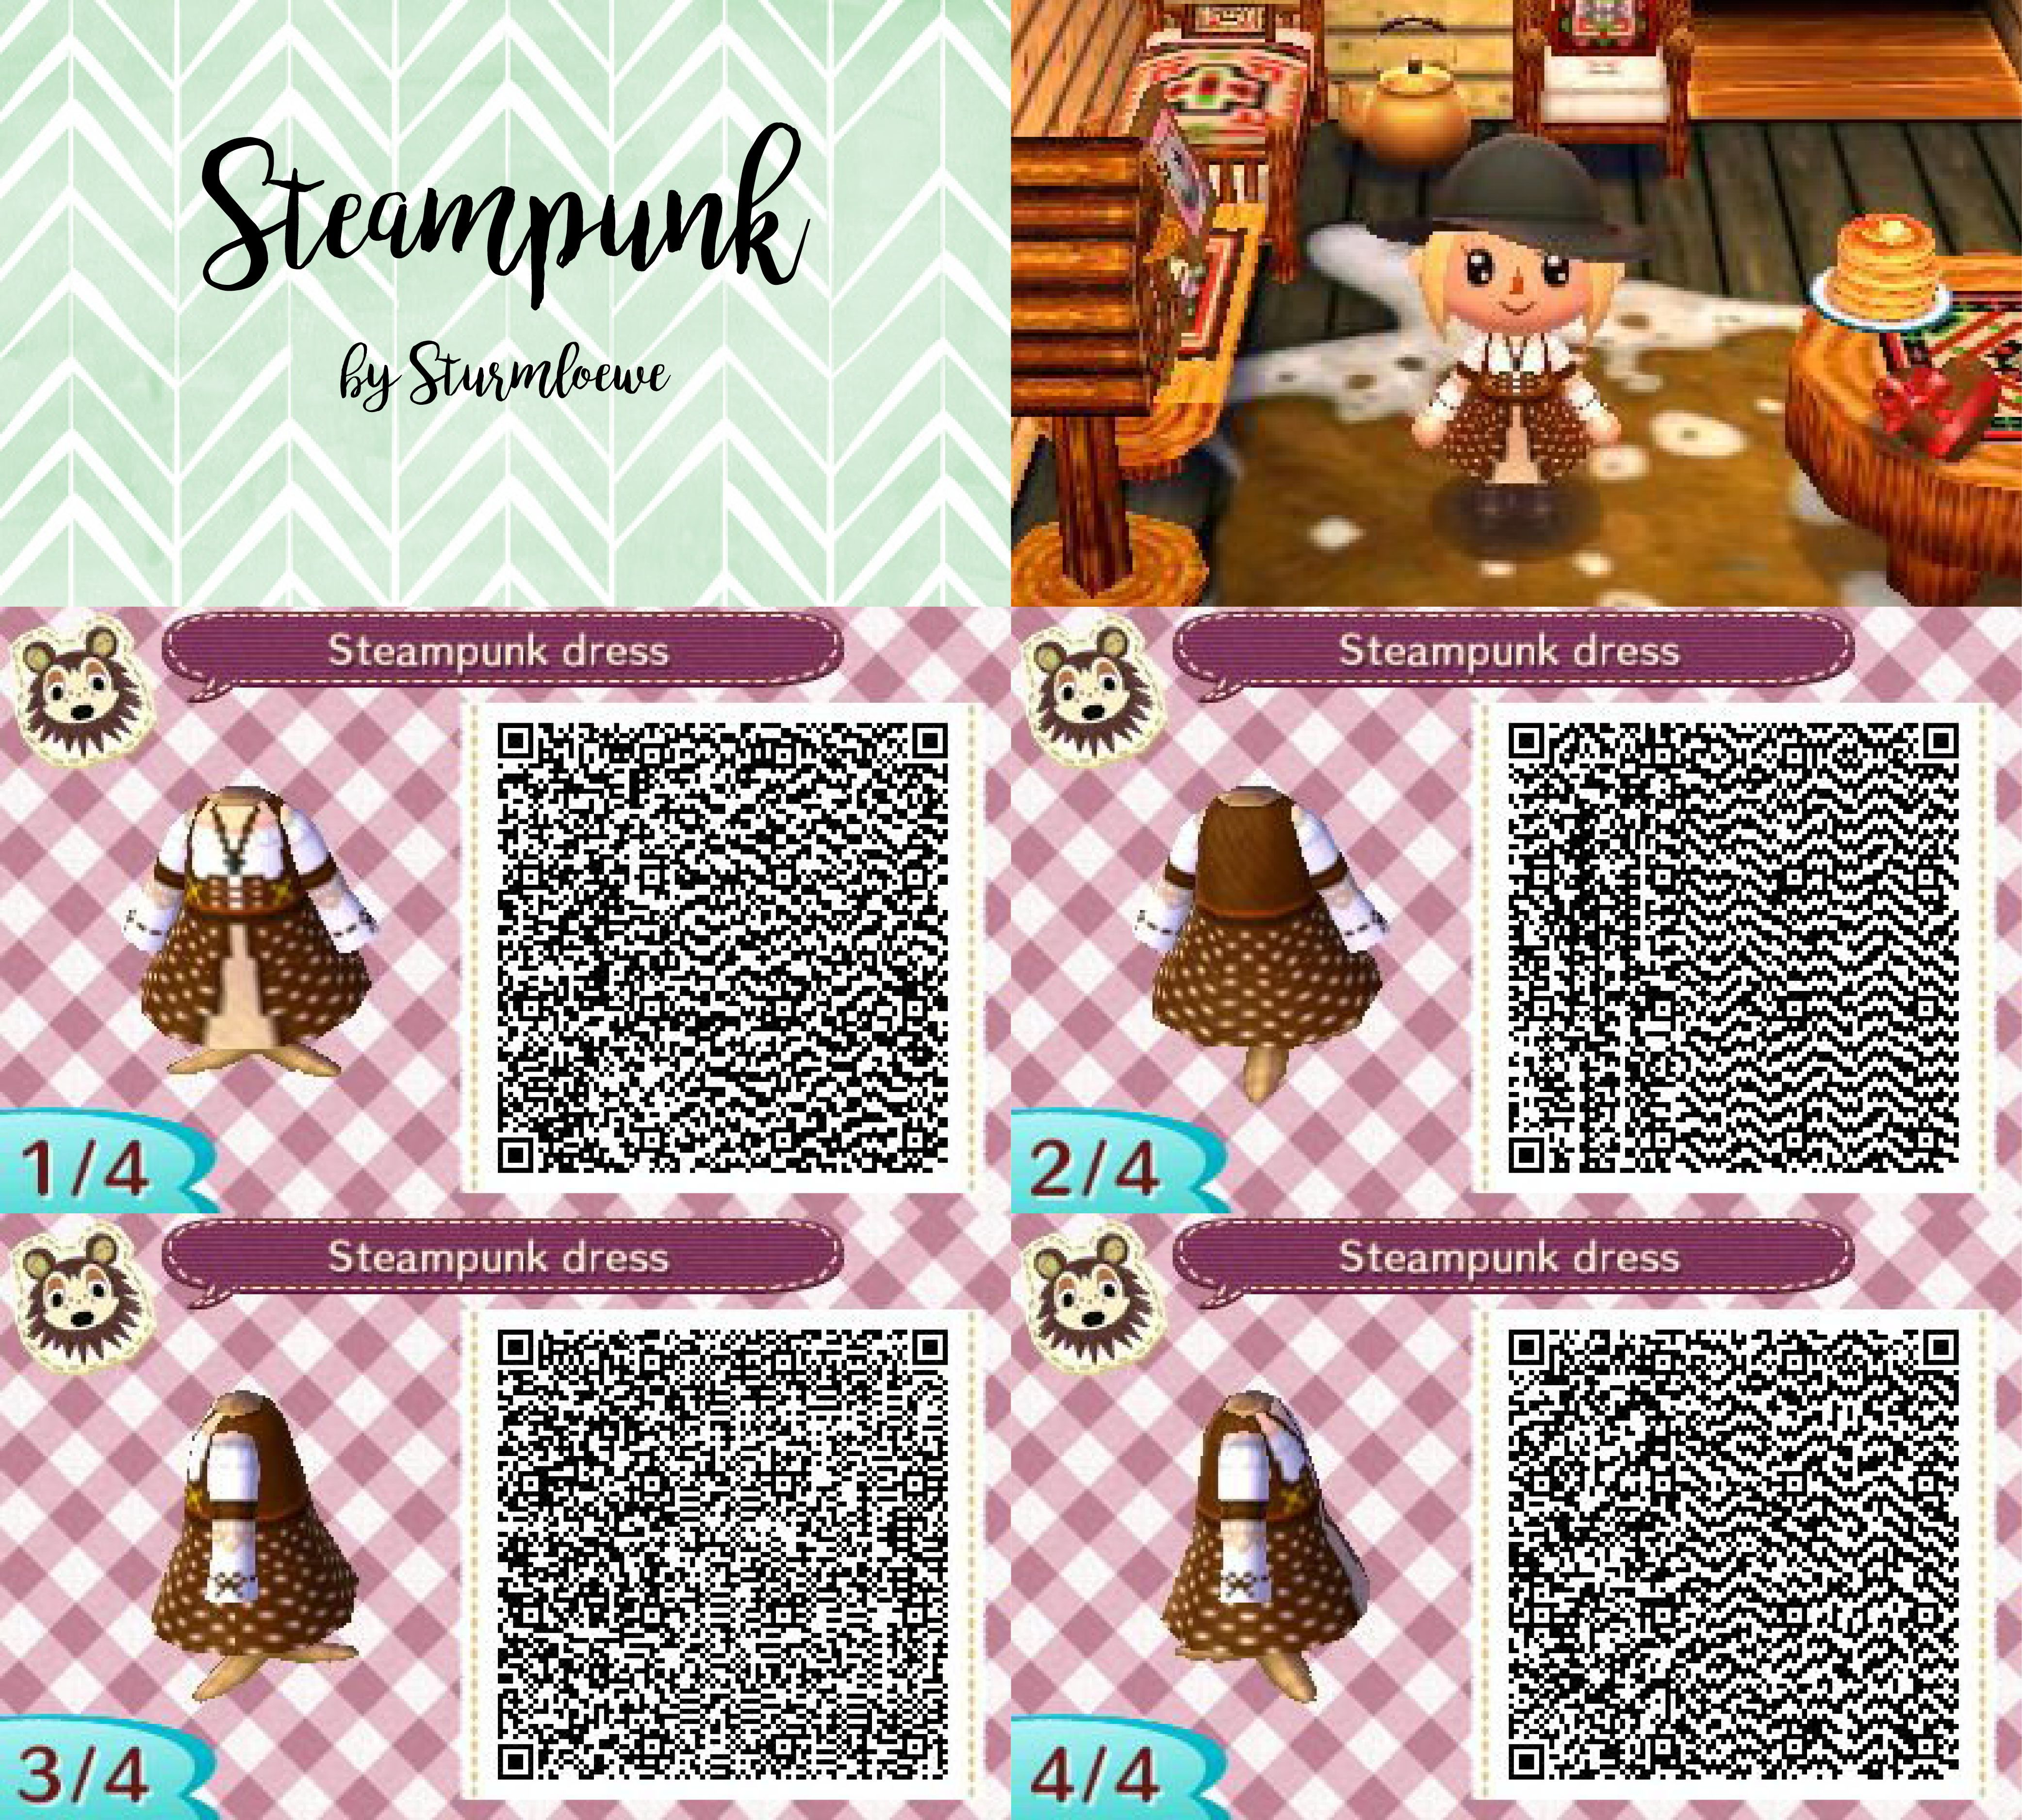 Steampunk dress qr code for Animal crossing new leaf (With ...